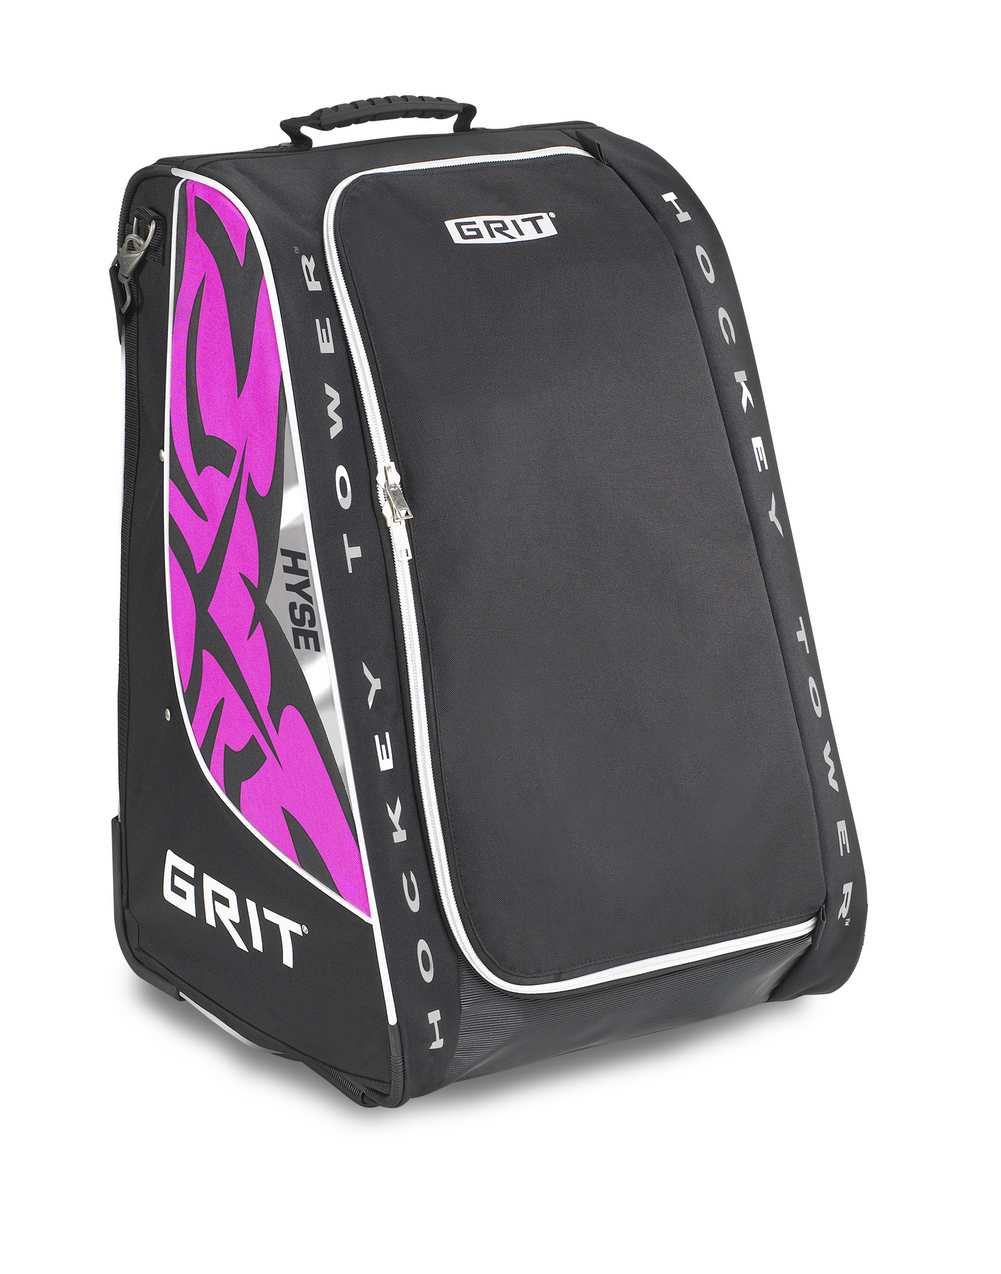 Grit Inc. Youth Hockey Tower Bag 30-Inch Assorted Colors HYSE-030 by Grit Inc.